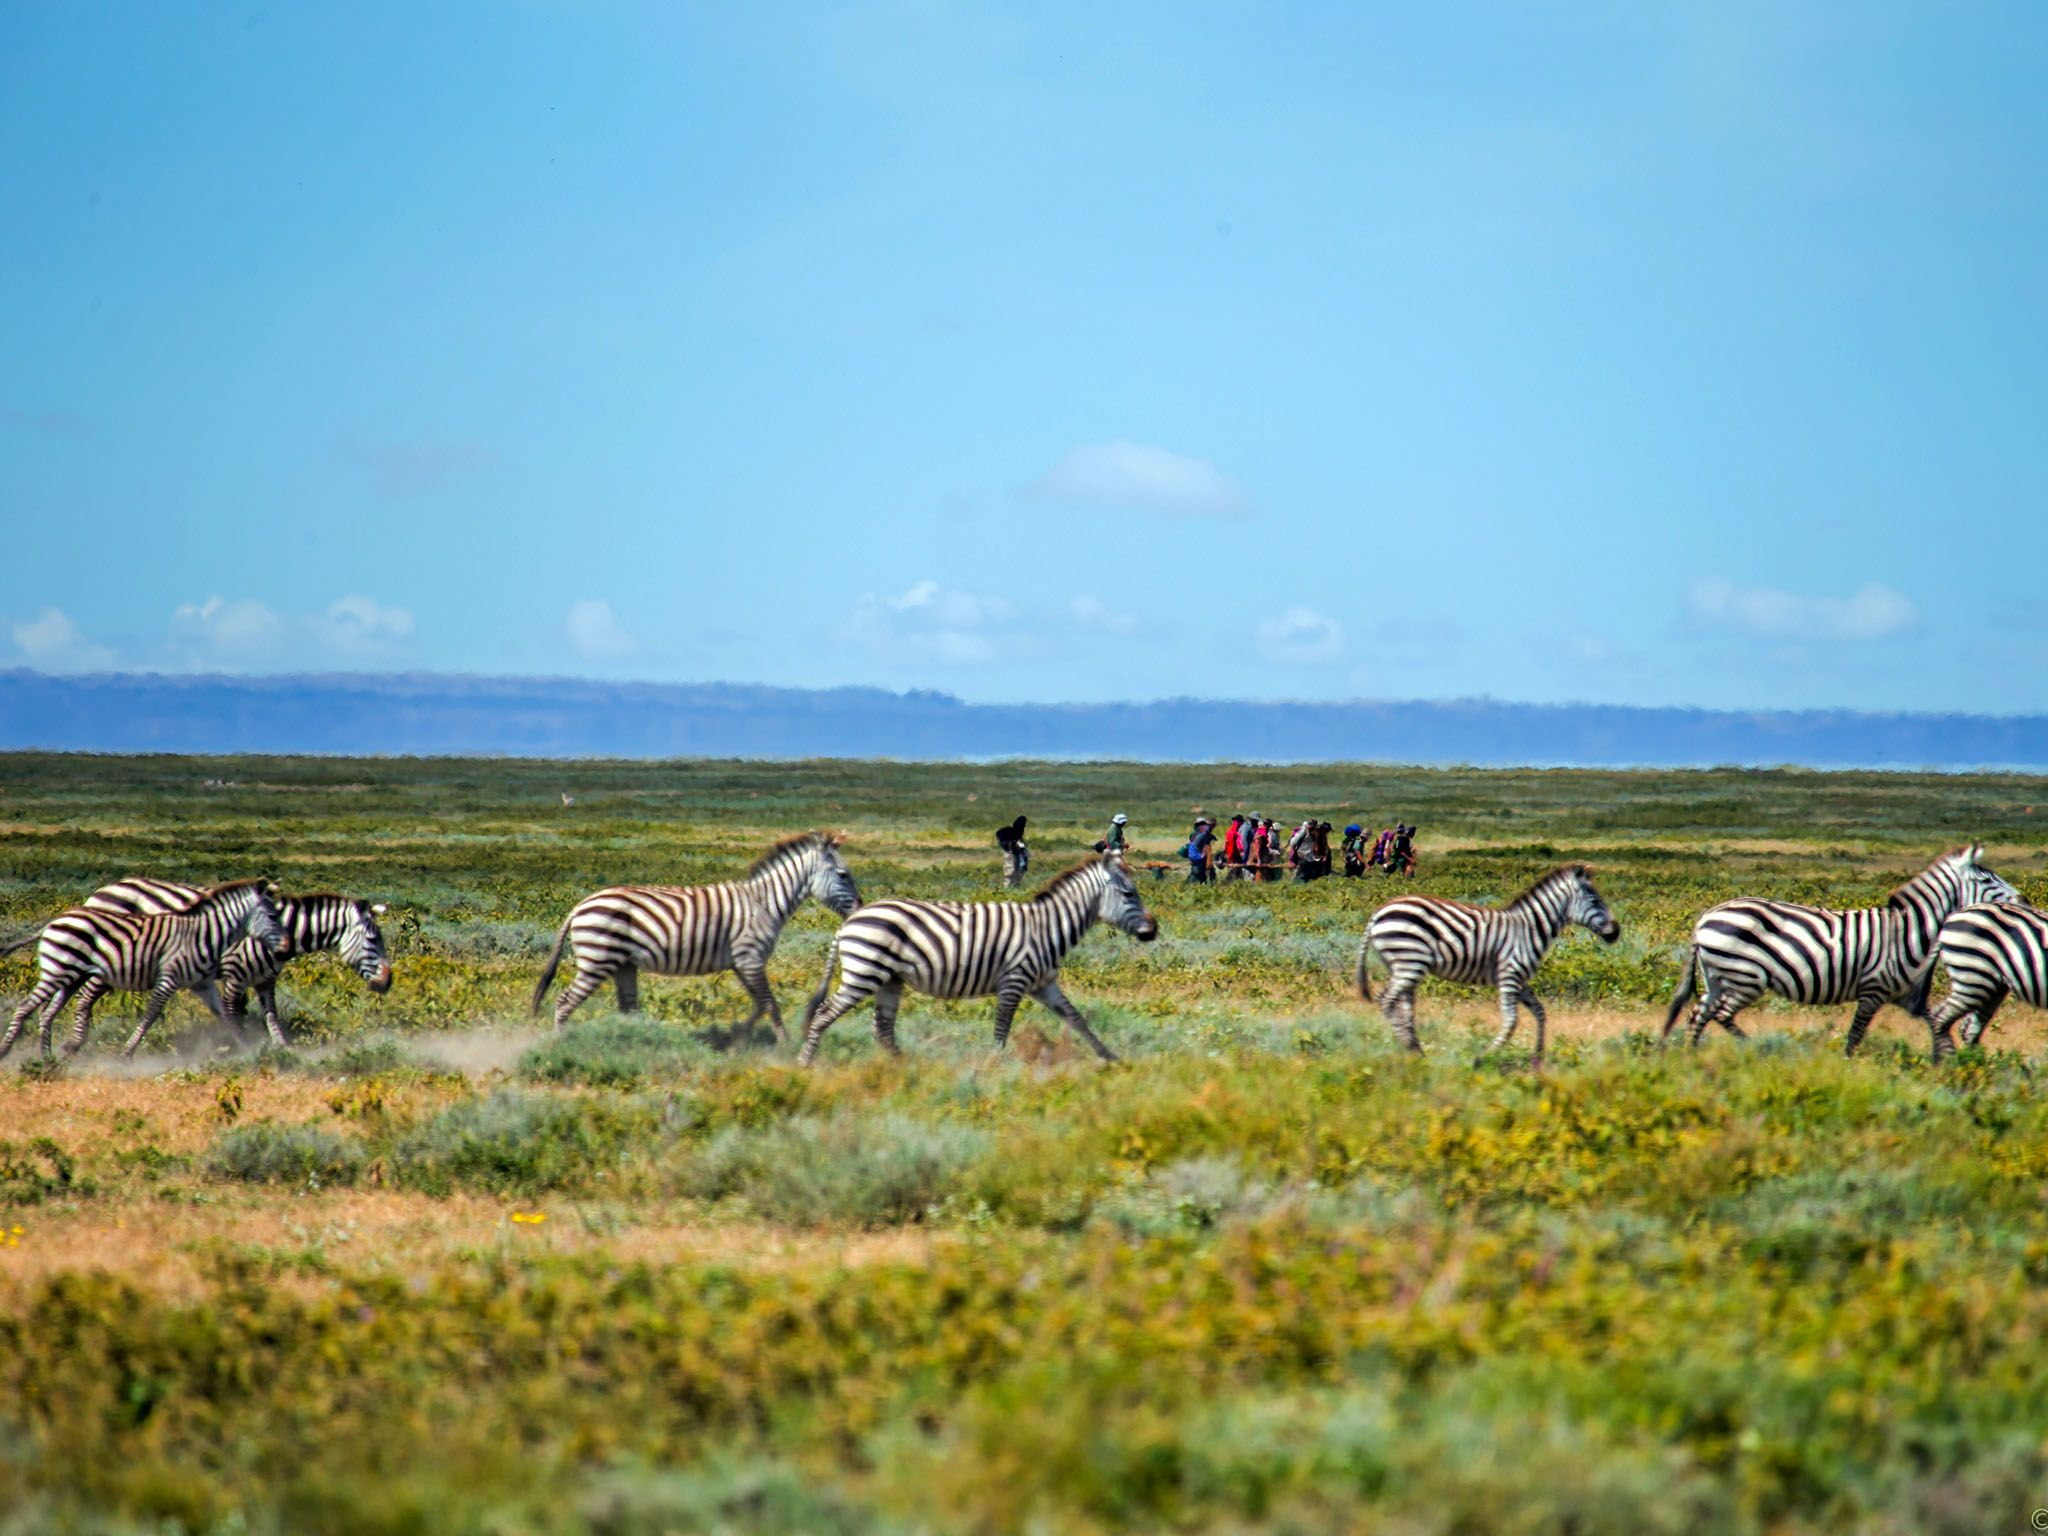 Tanzania, Africa: Extreme long shot of human herd migrating with a herd of zebras in middle... [Photo of the day - May 2016]